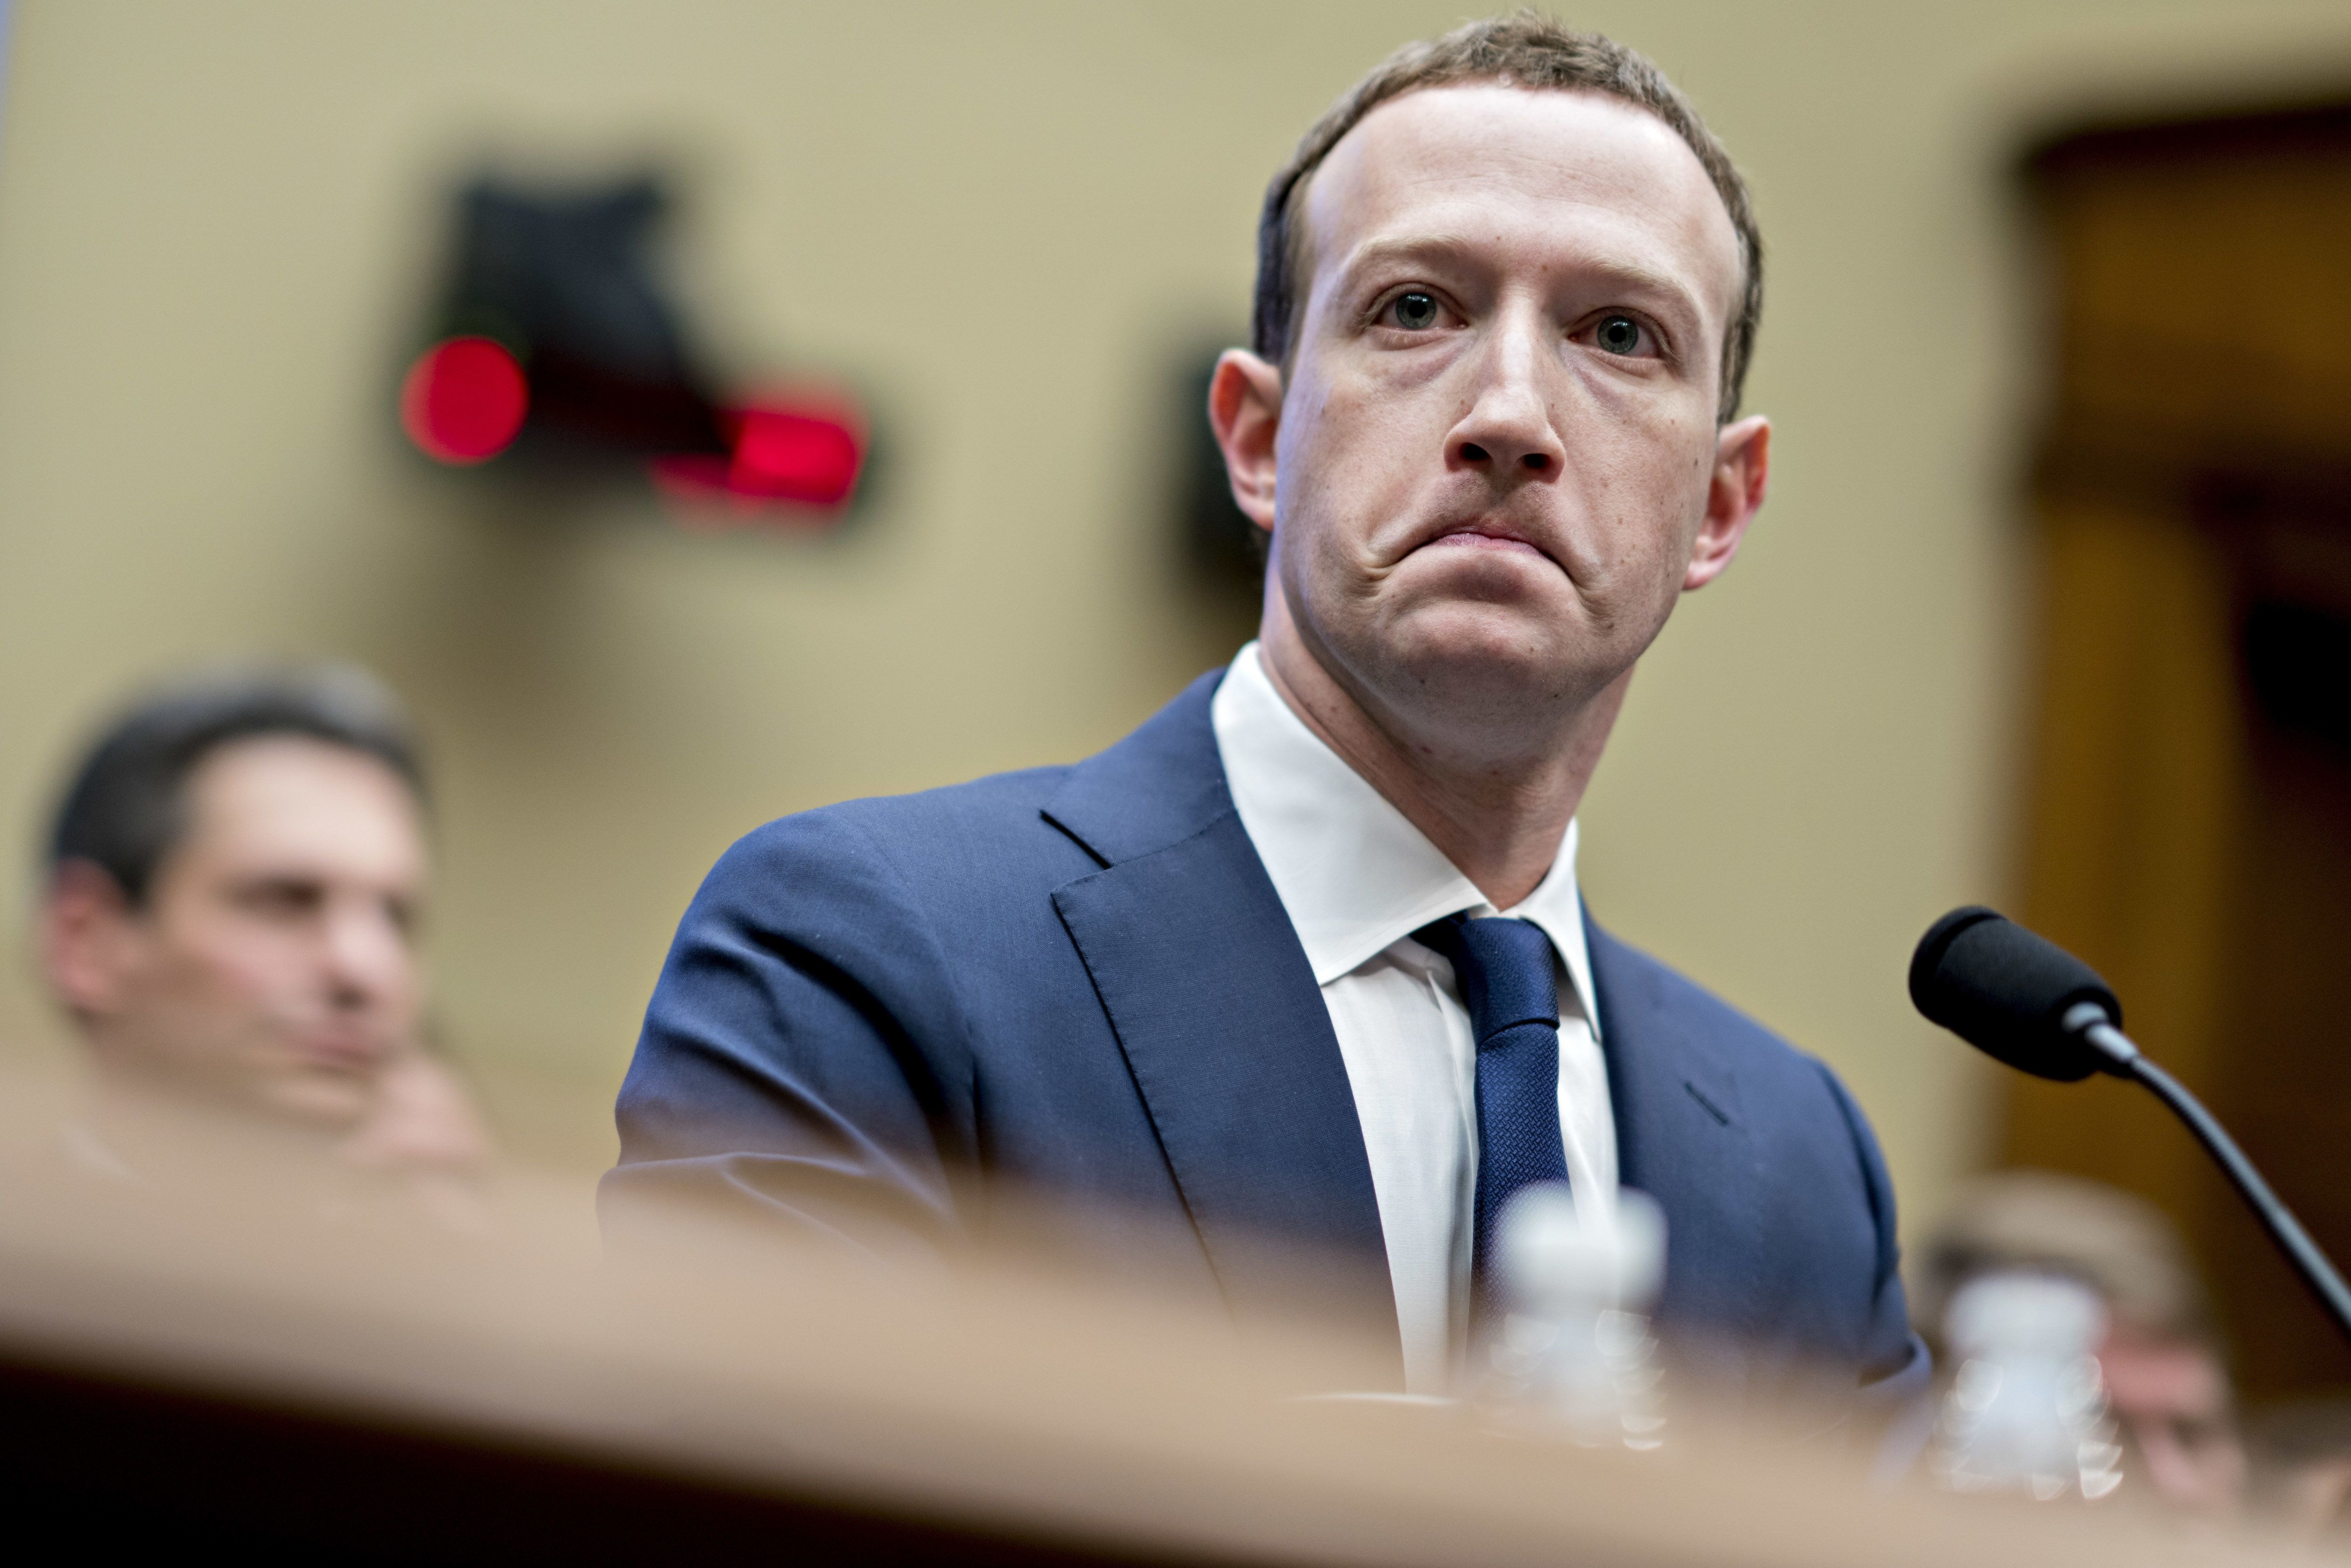 Facebook founder Mark Zuckerberg was grilled by congressional lawmakers earlier this year. It did not go well.